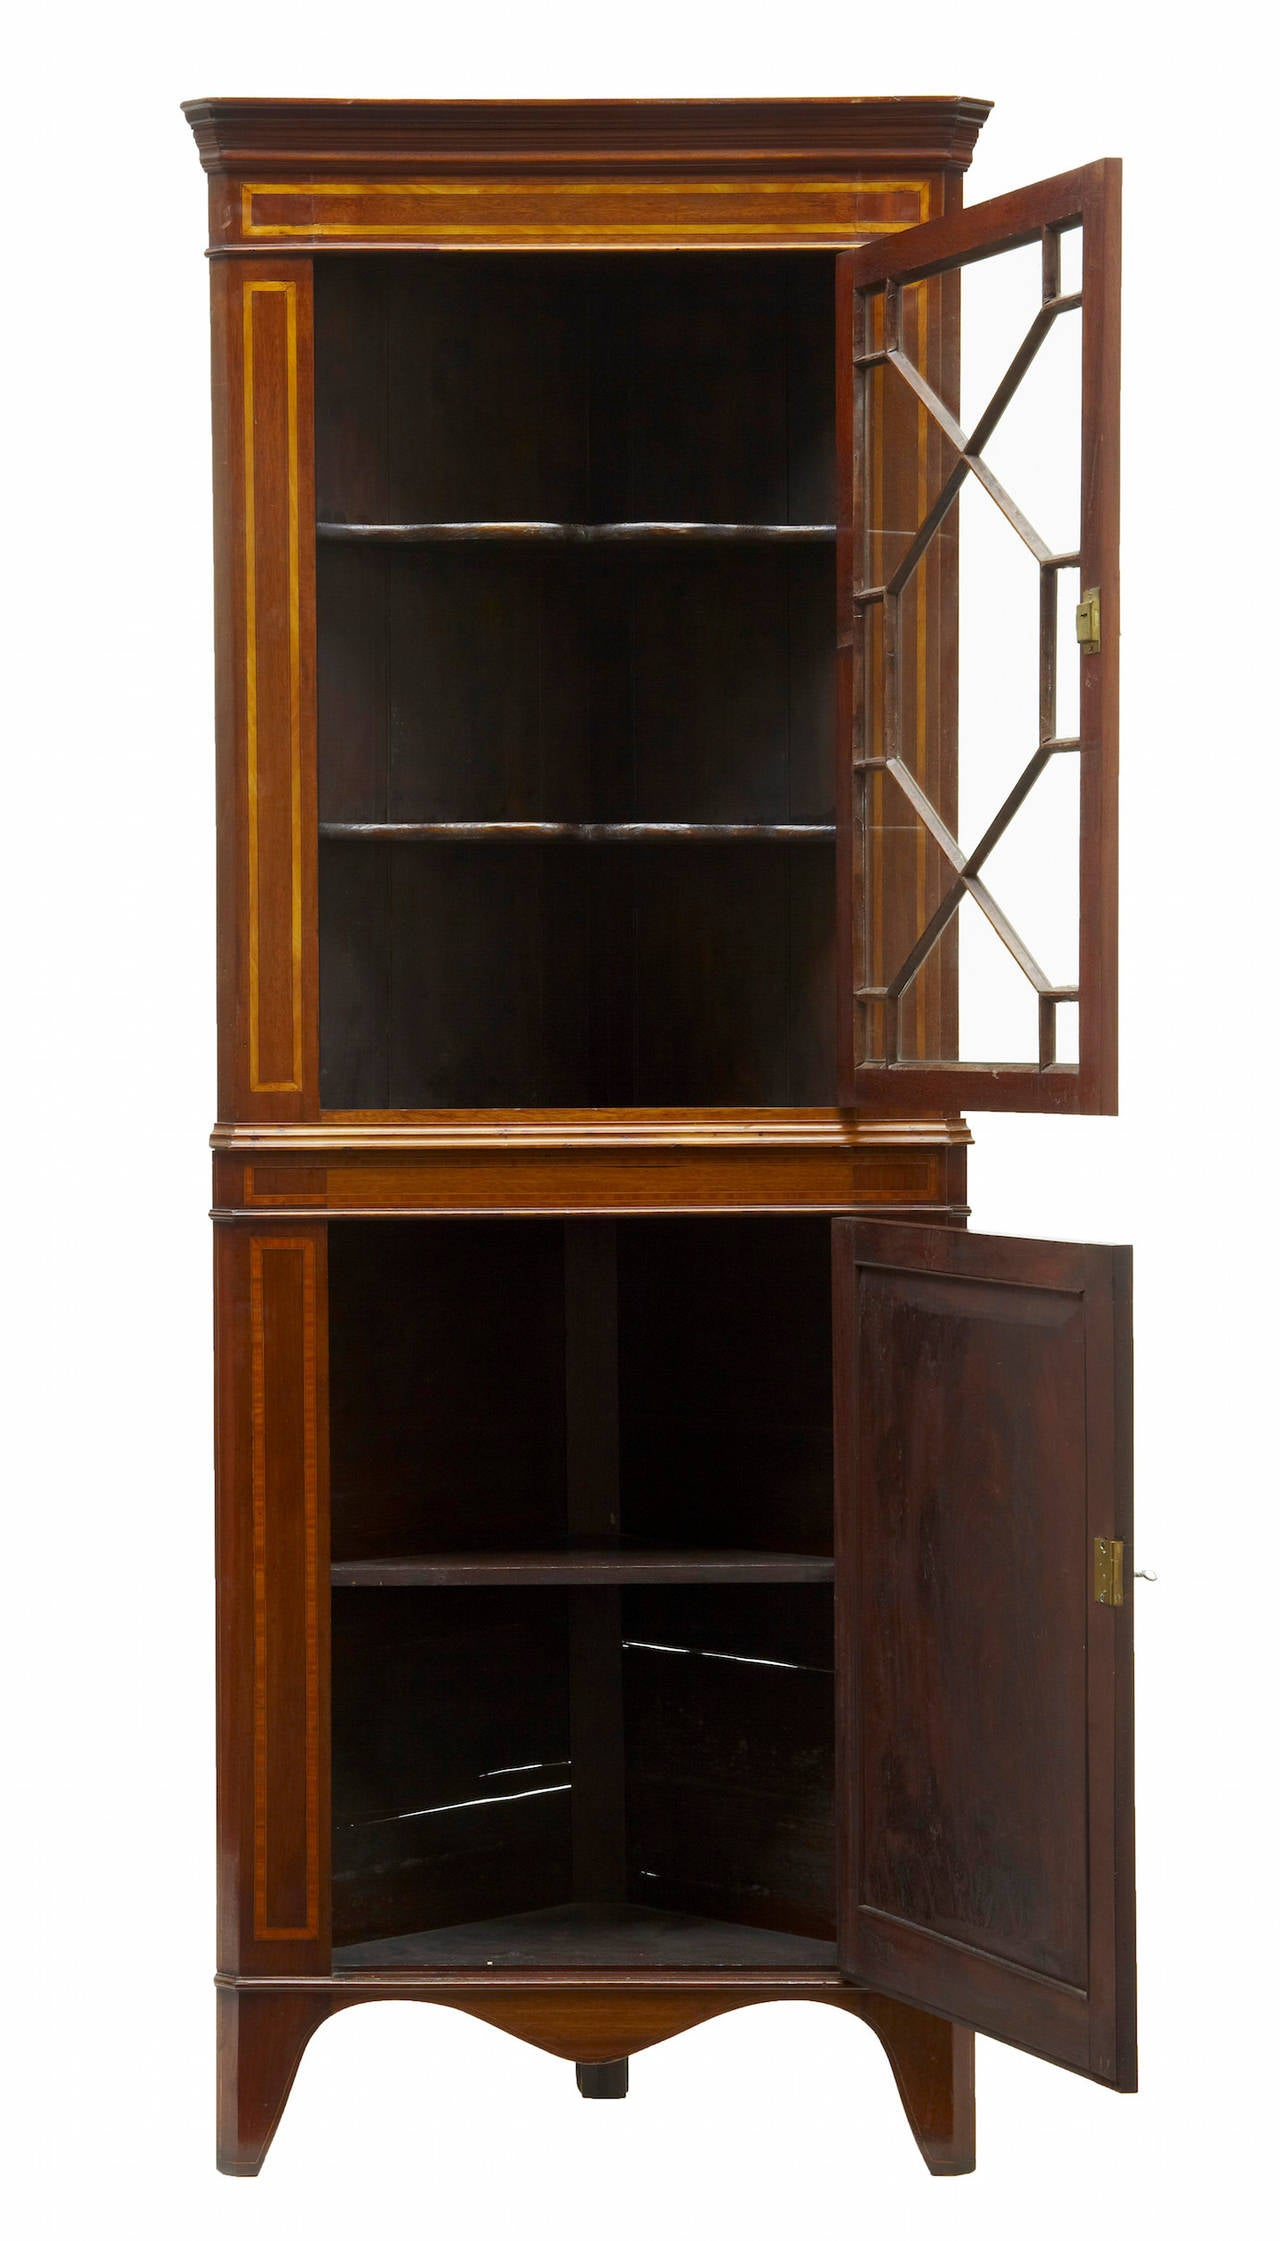 Inlaid mahogany Regency corner cabinet, circa 1820.   Glazed display cabinet to the top containing two shelves, single door below with one shelf.  Measures: Height 73